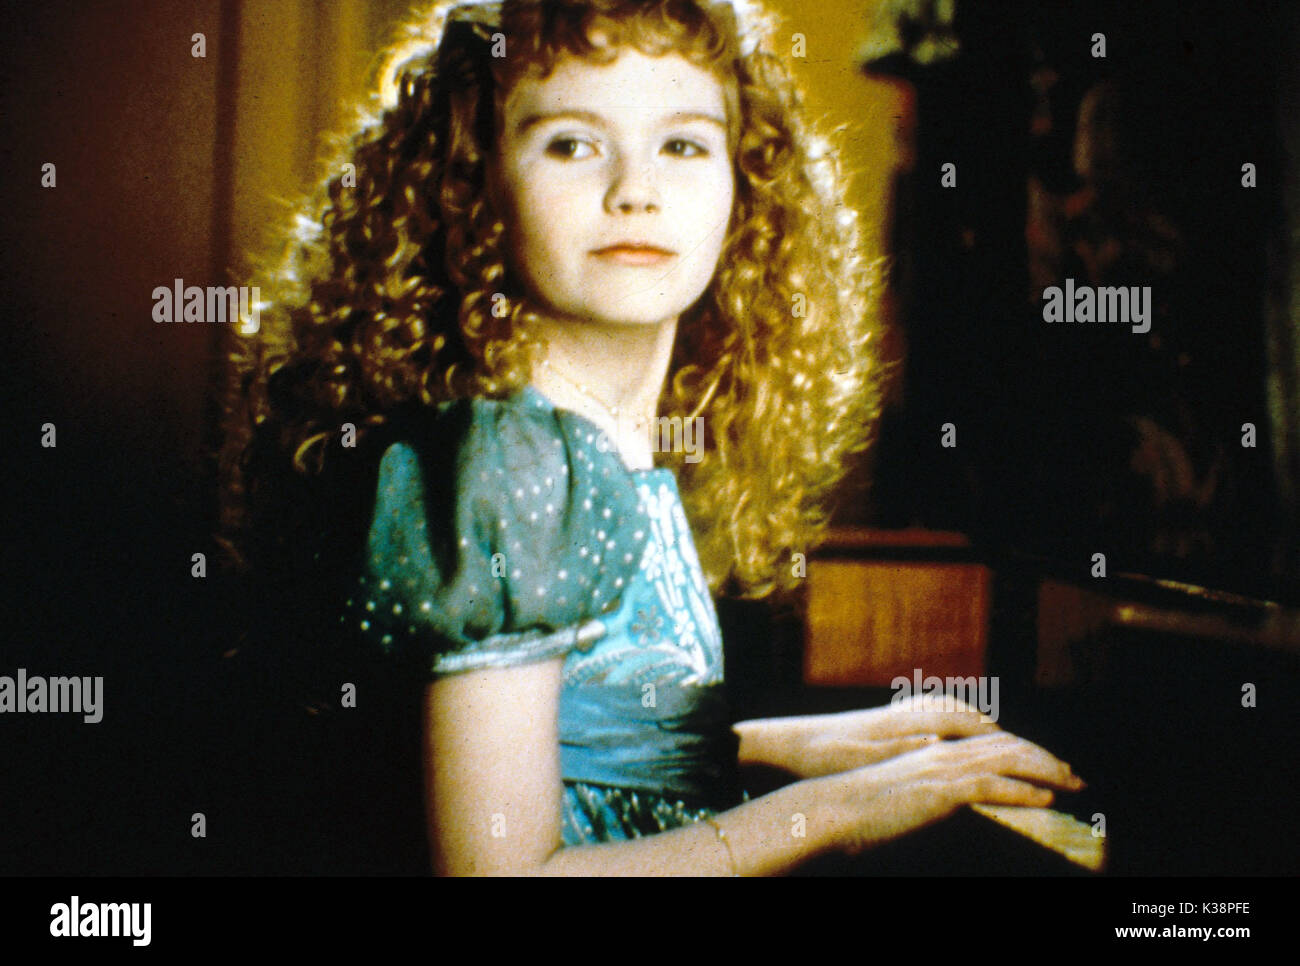 Interview With The Vampire The Vampire Chronicles Kirsten Dunst Stock Photo Alamy